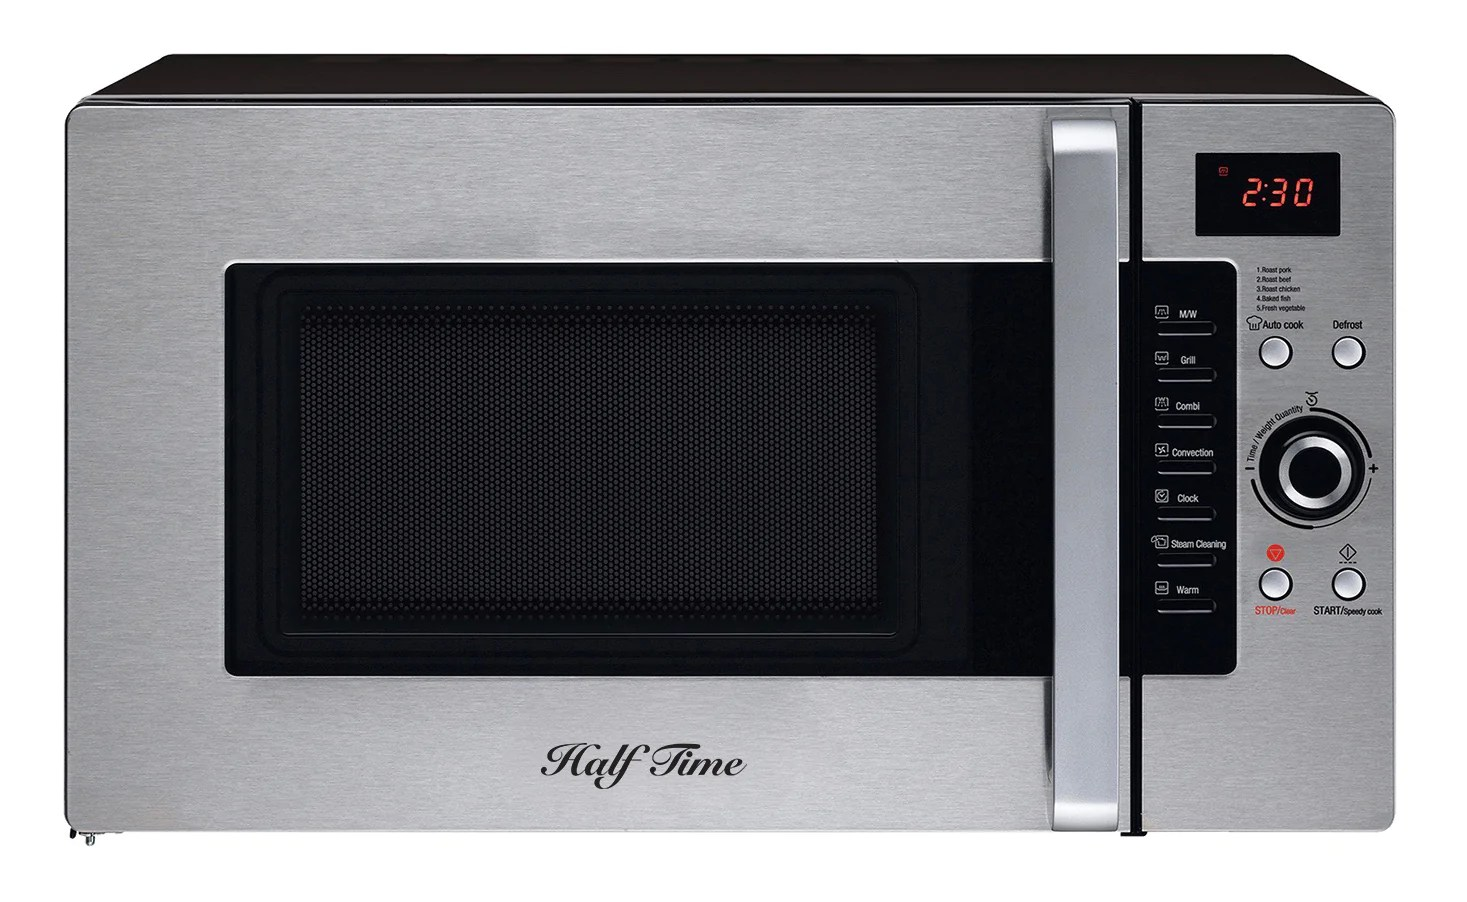 Bis 1.2 Fireplace Manual Half Time Convection Microwave Oven 1 2 Cu Ft Countertop Stainless Steel Black Mc 300 Cts B